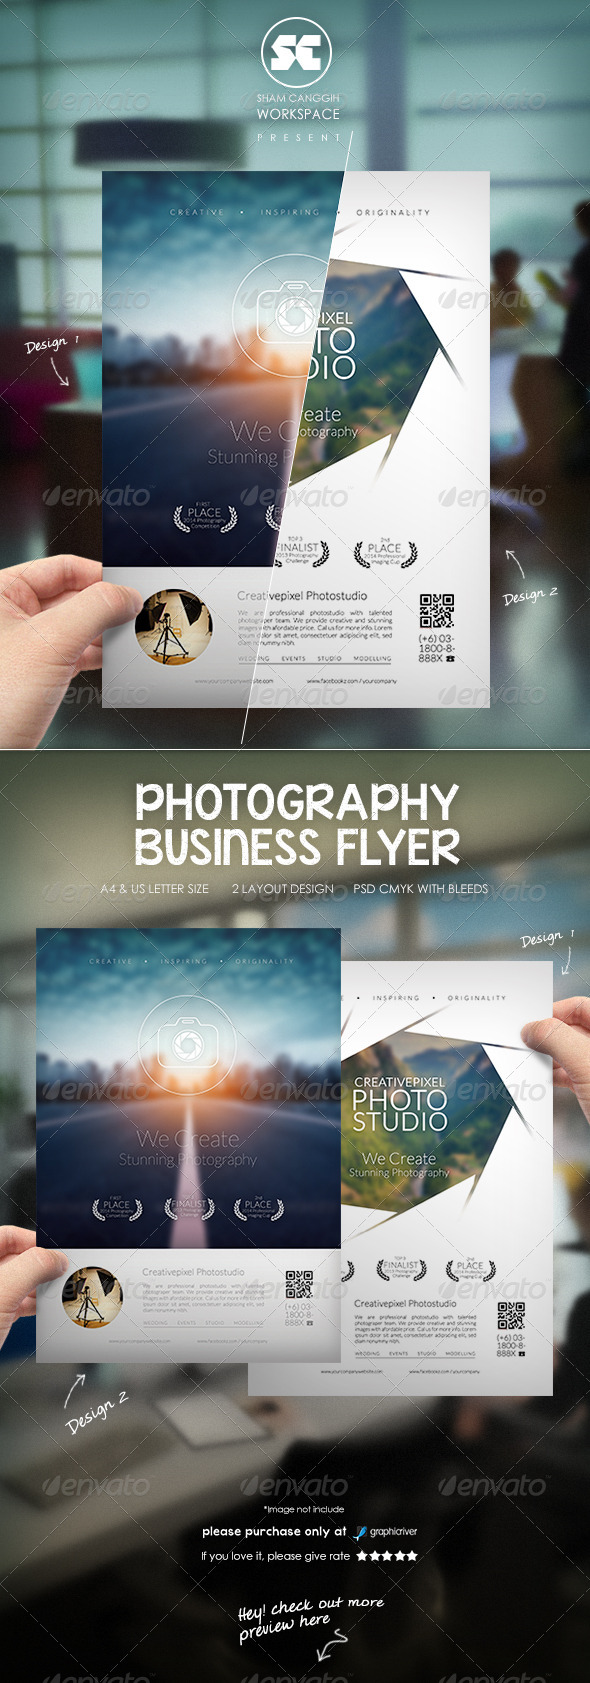 GraphicRiver Photography Business Flyer 8748575